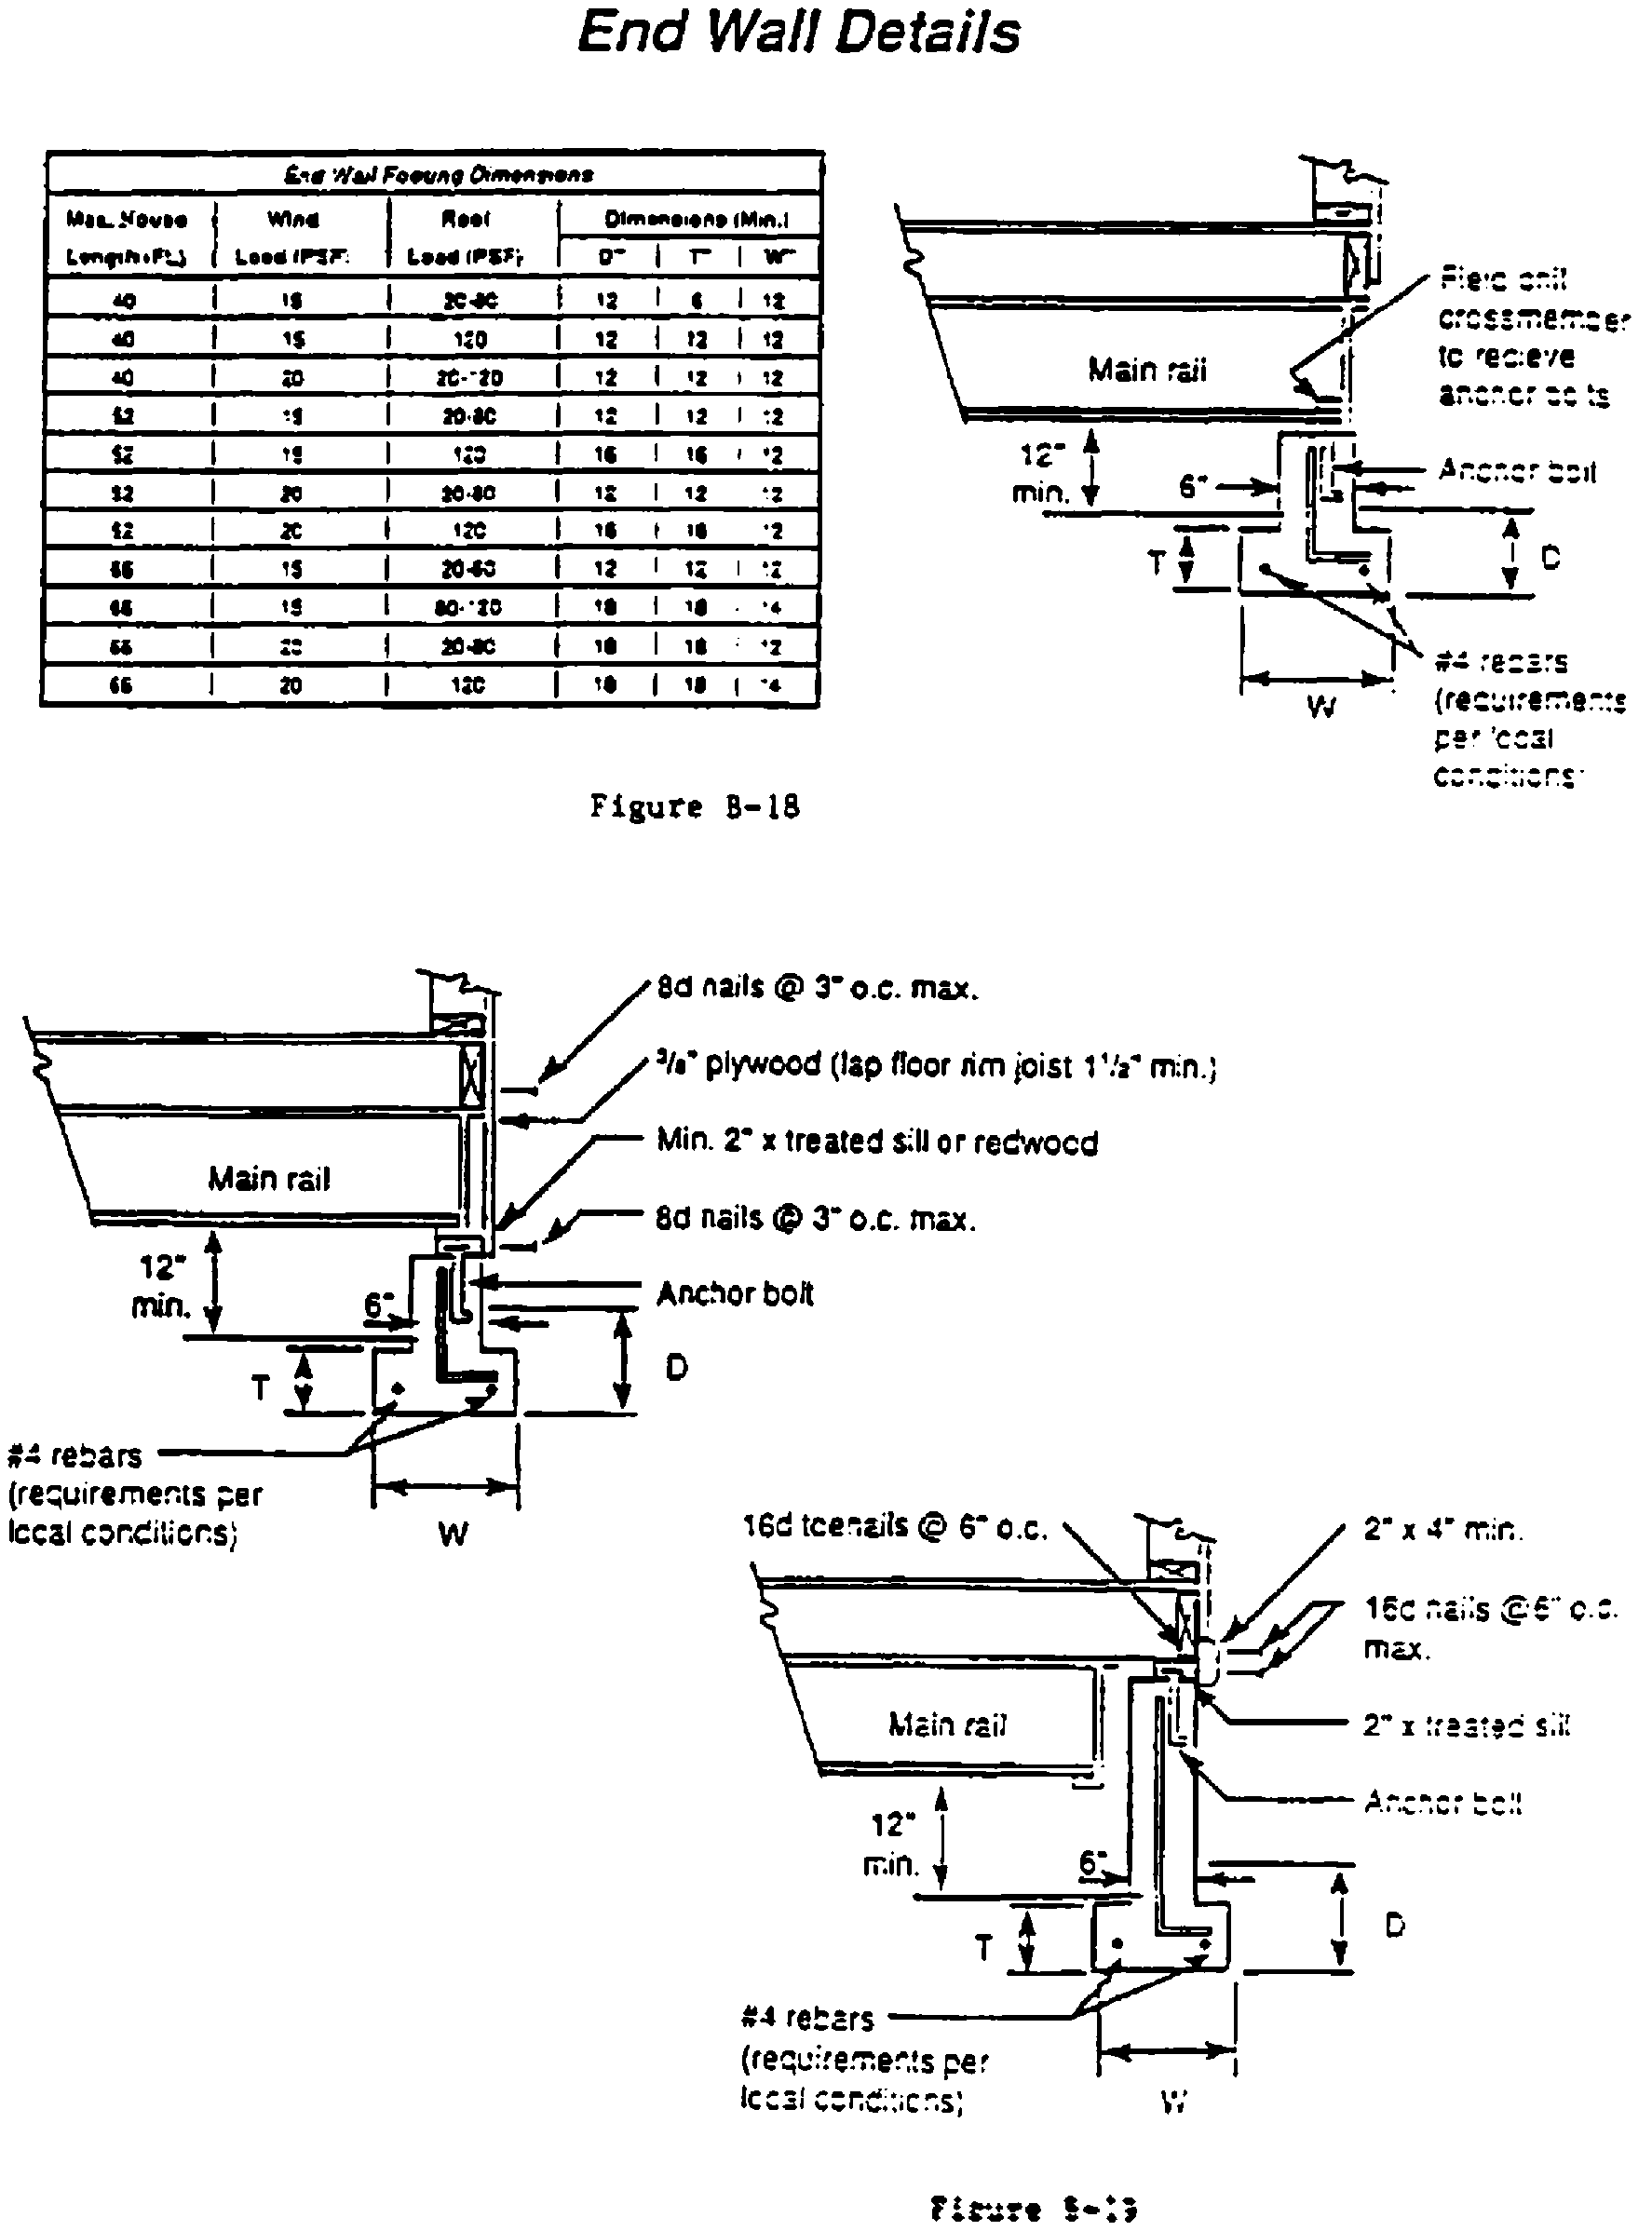 TYPICAL DESIGNS FOR LOAD-BEARING SUPPORTS FOR MANUFACTURED HOMES - Figure 16